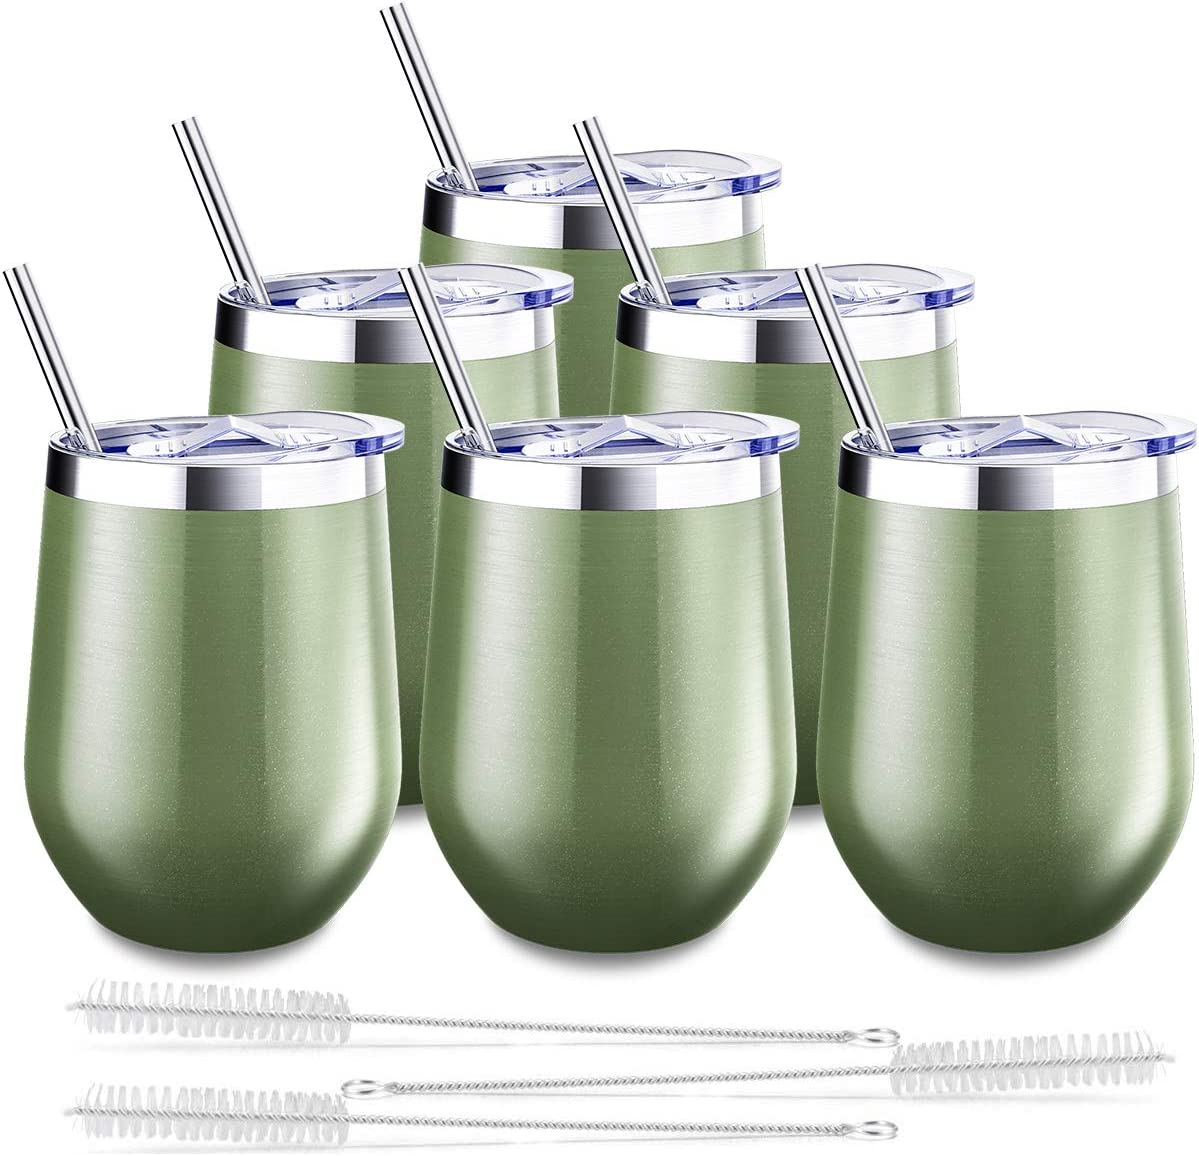 Blingco 6 Pack Stemless Wine Tumbler, 12 Oz Stainless Steel Wine Glass with Lids and Straws, Unbreakable Double Wall Vacuum Cup Insulated Wine Tumbler for Wine, Coffee, Cocktails, Champagne(Green)